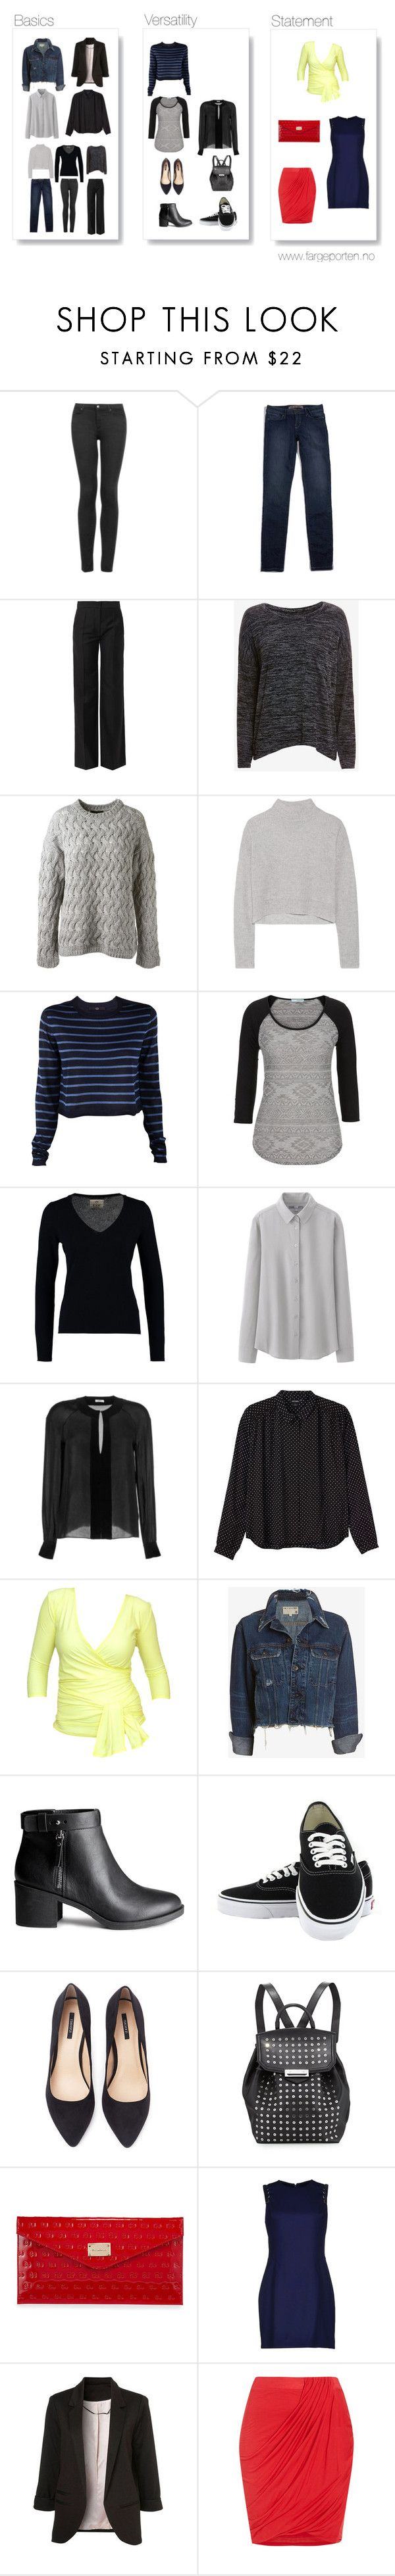 """""""Basic capsule wardrobe"""" by fargeporten ❤ liked on Polyvore featuring Topshop, GUESS, Balenciaga, rag & bone/JEAN, The Row, Line, TIBI, maurices, FTC and Uniqlo"""